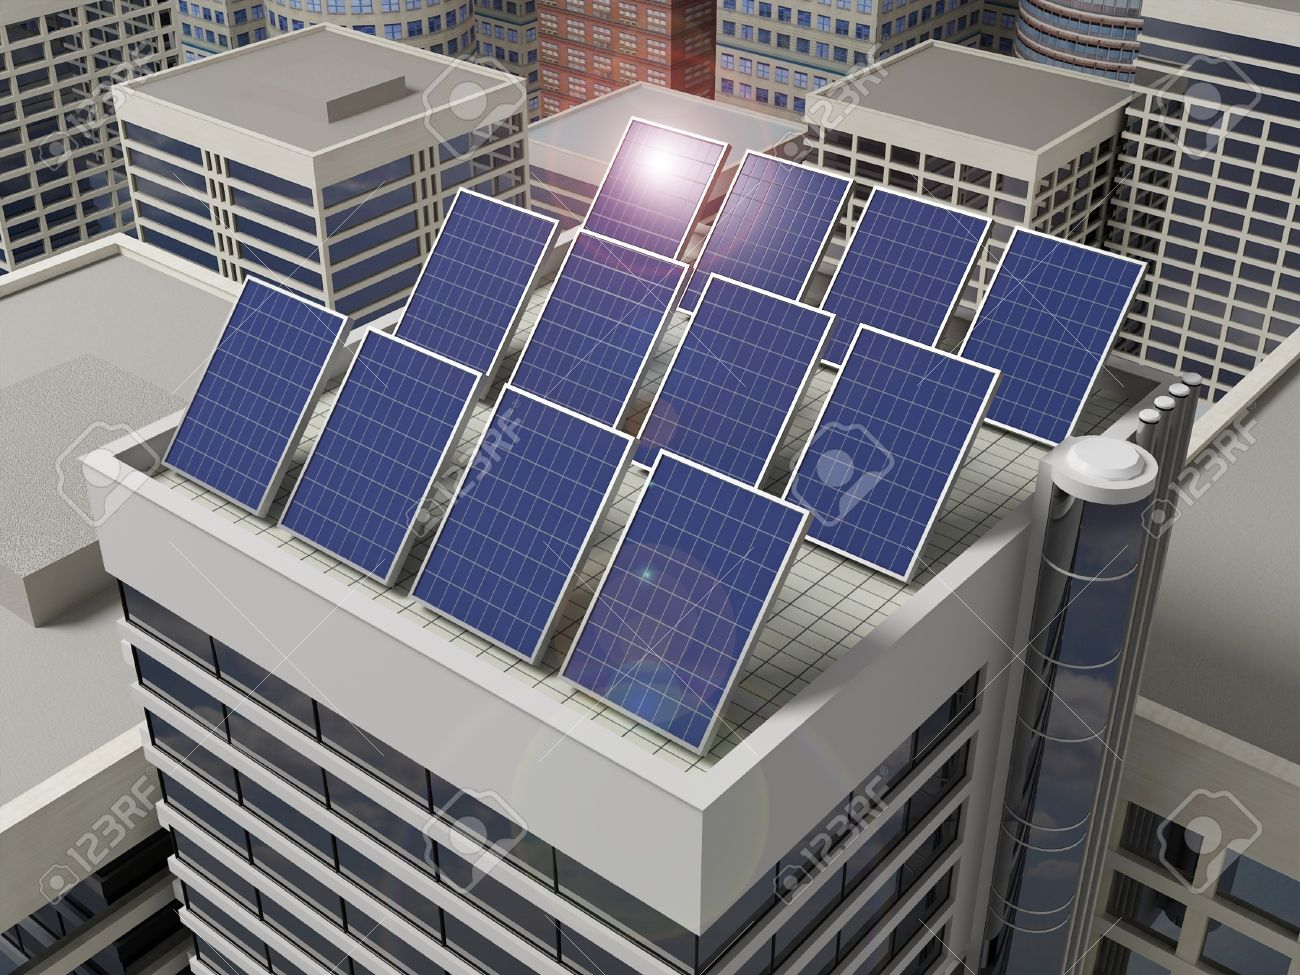 Solar Panels on The Roof of a Skyscraper